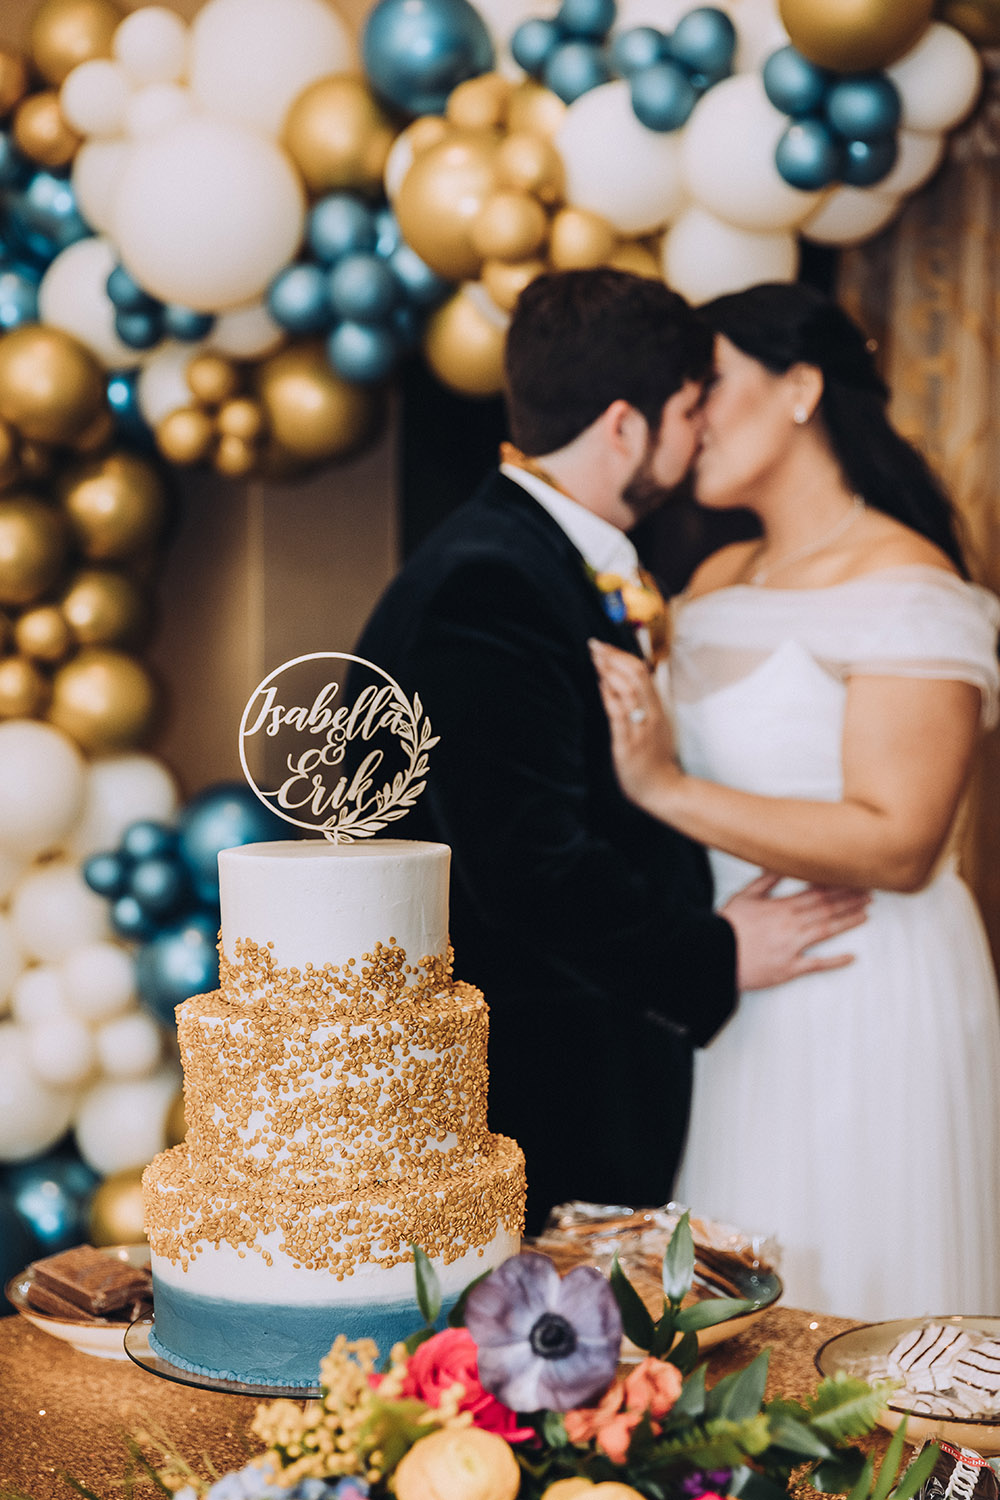 The bride and groom kiss by the wedding cake